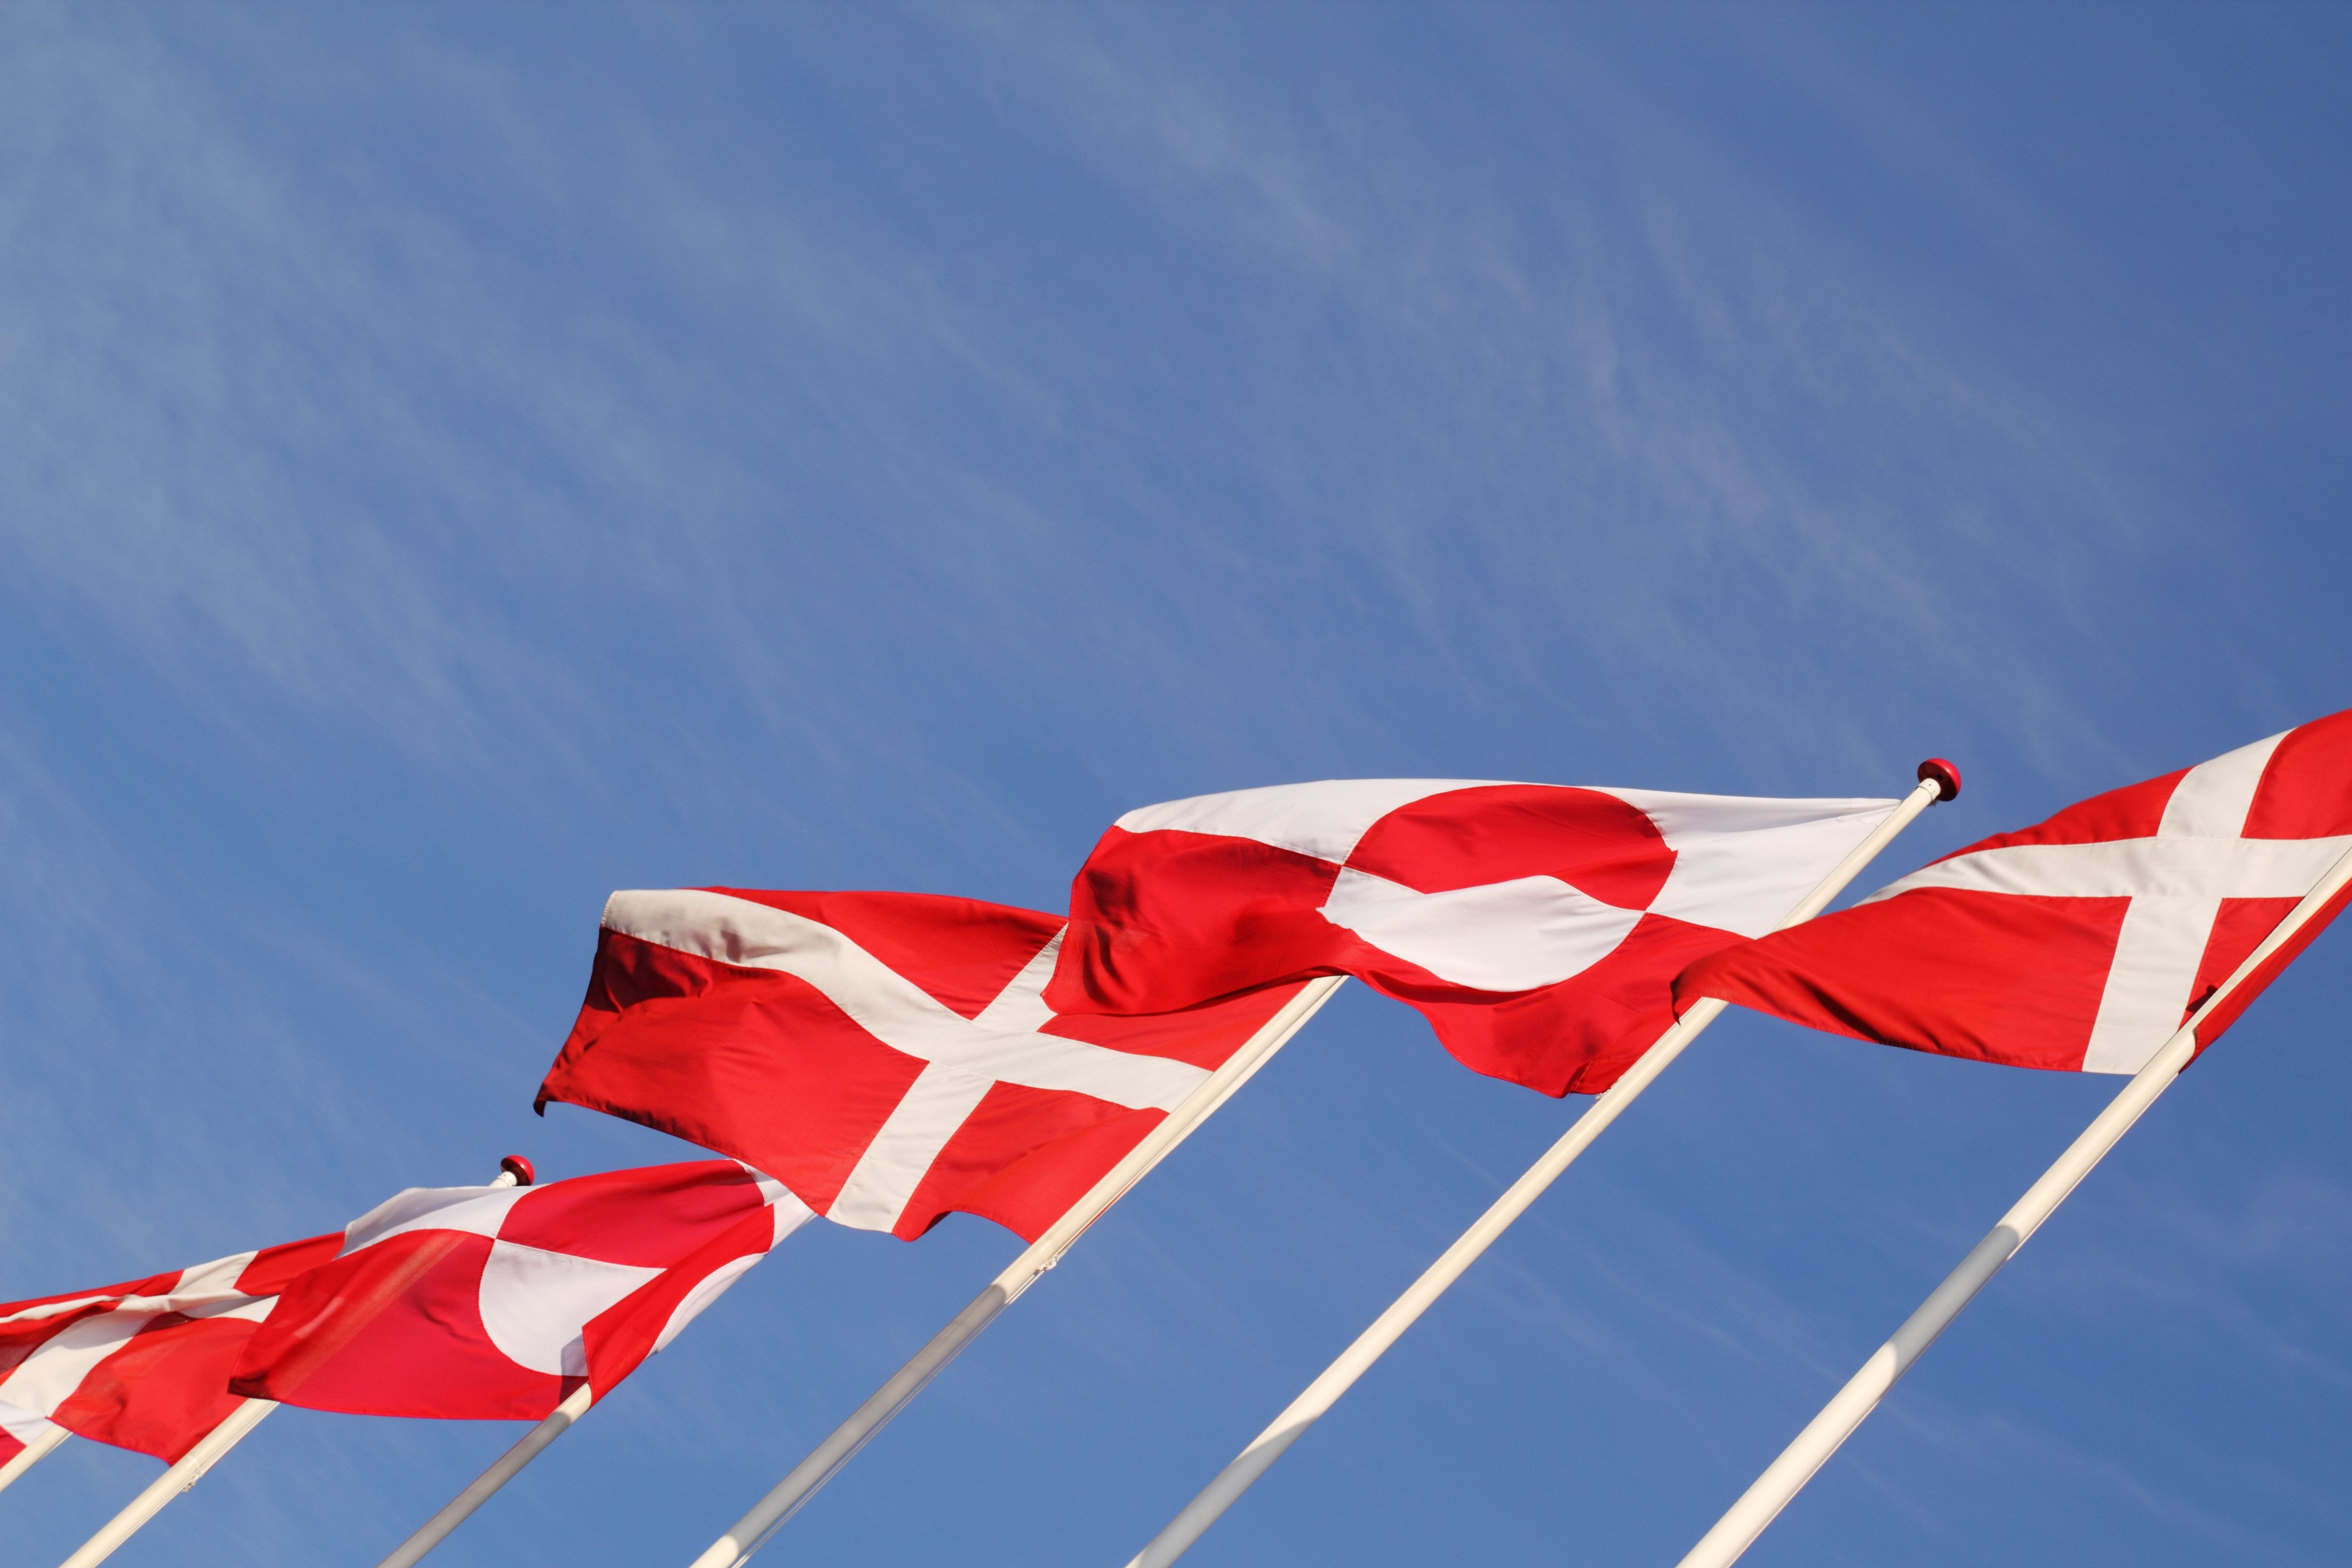 Denmark works to keep Greenland and the Faroe Islands from going their separate ways